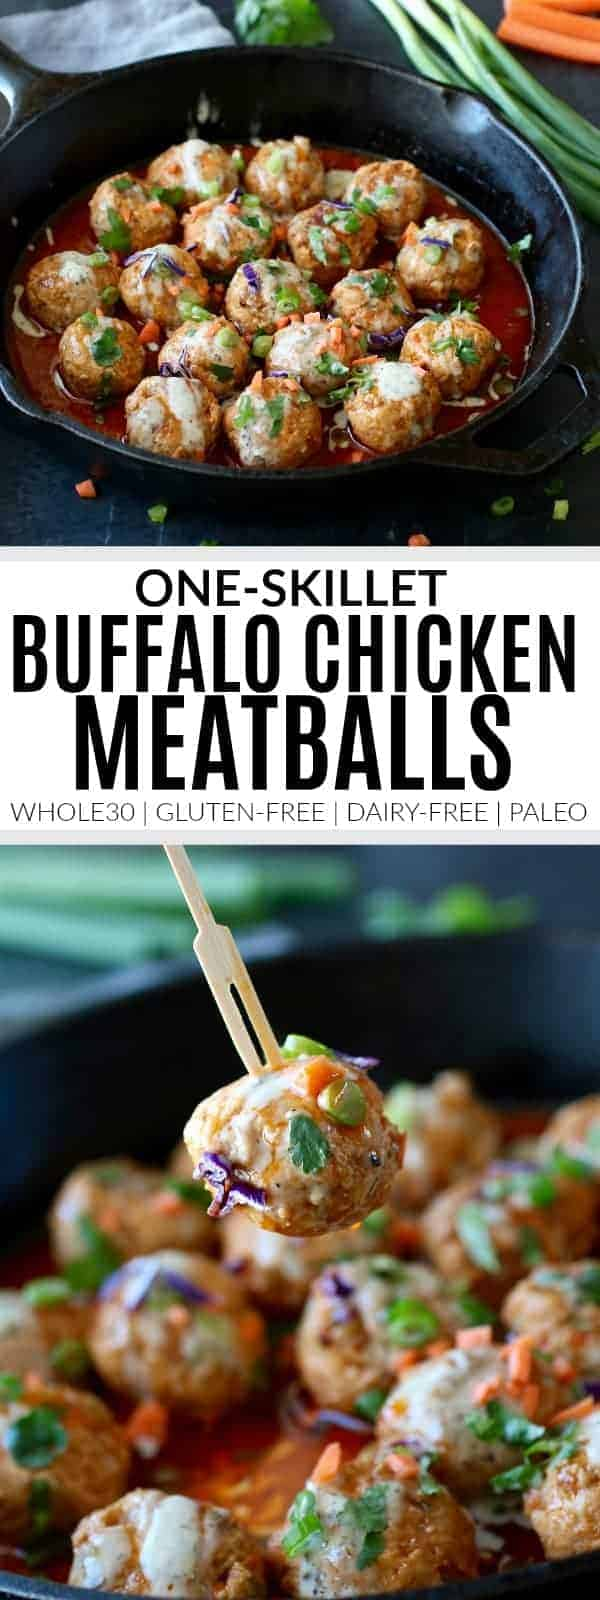 pinterest image for one-skillet buffalo chicken meatballs